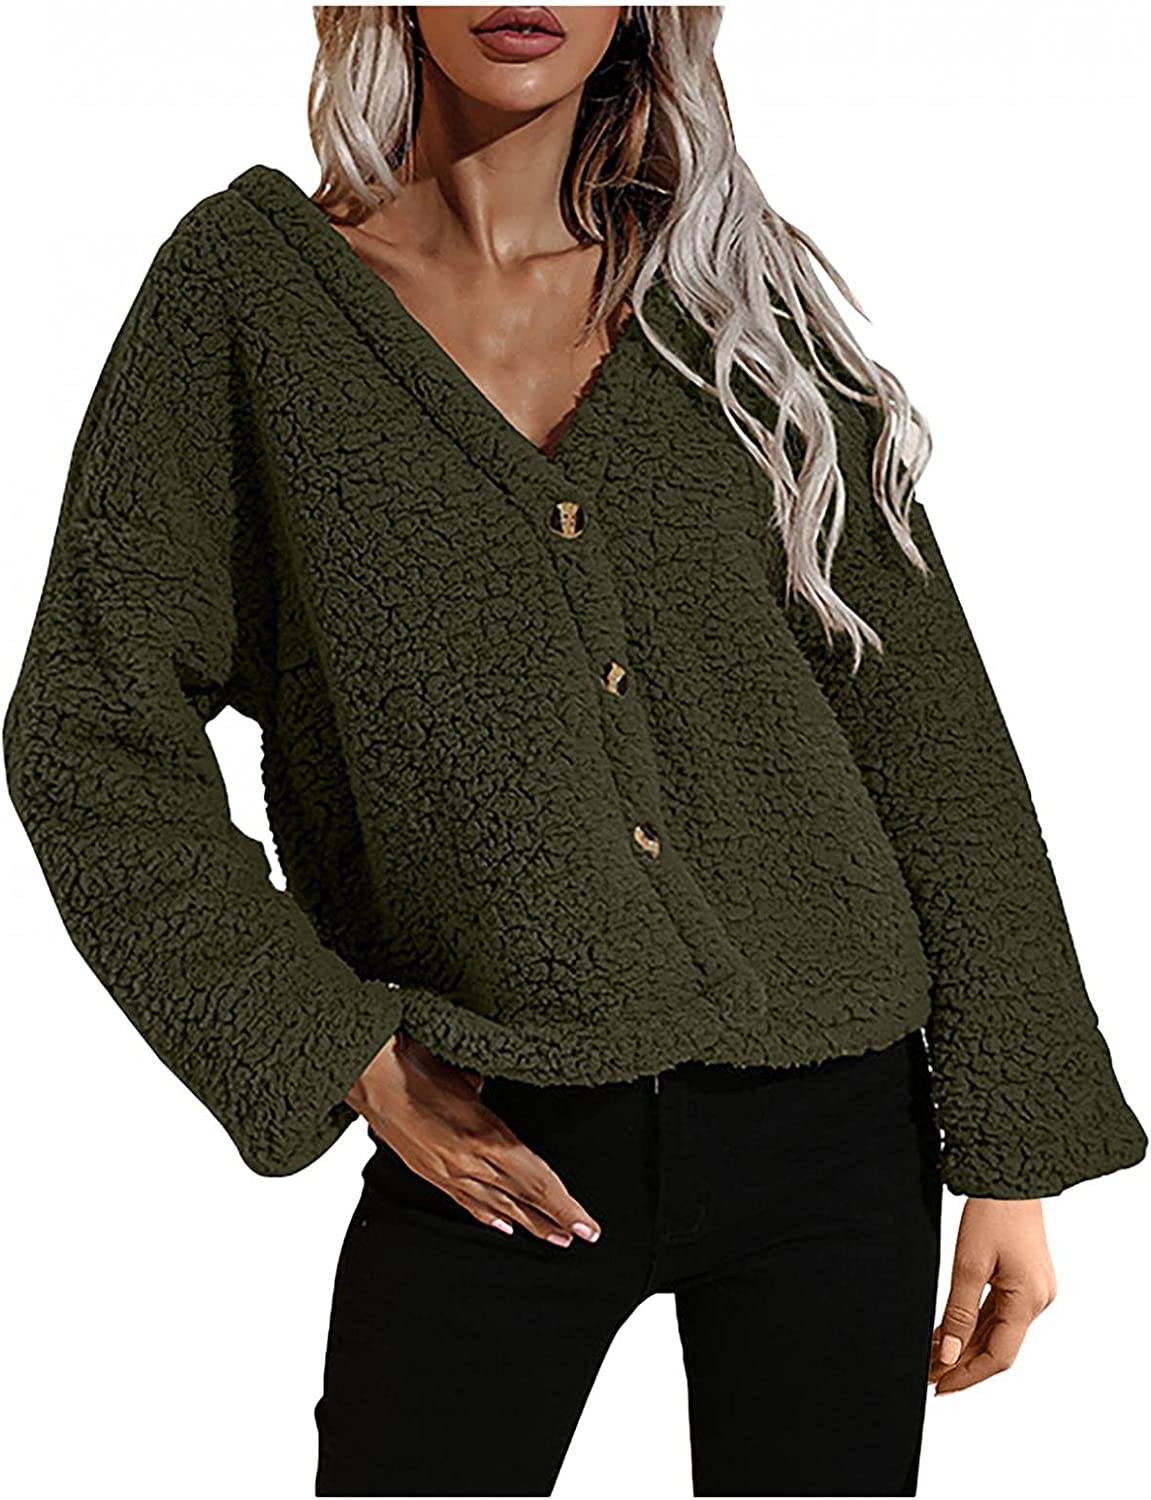 DOSUKRAI Ladies Warm Long Sleeves Tops Big V Neck Pullover Solid Color Comfy Blouse Fall Winter Pop Sweaters